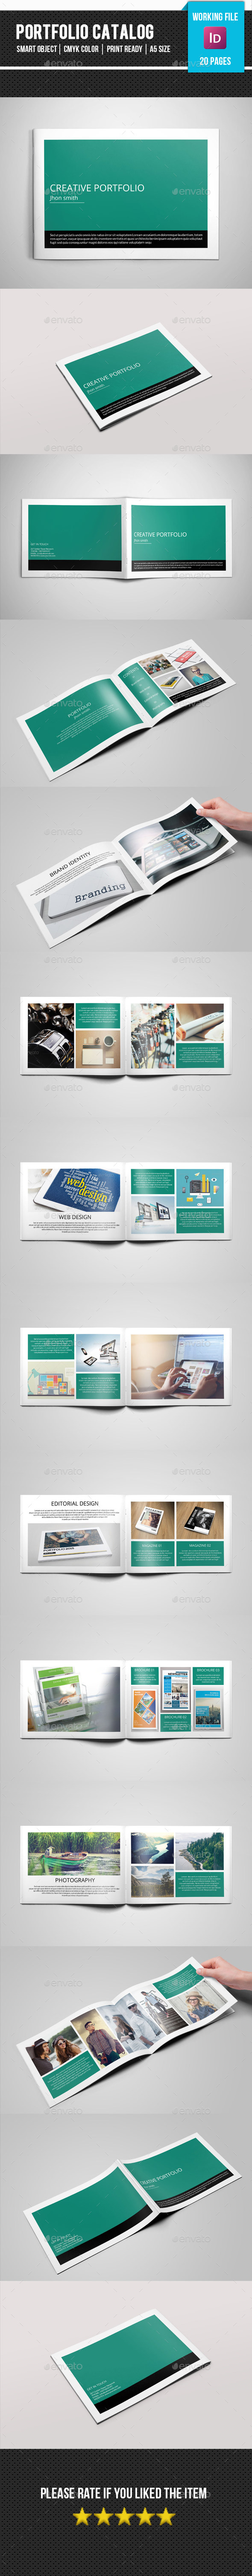 GraphicRiver Portfolio Catalog Brochure-V270 11563451